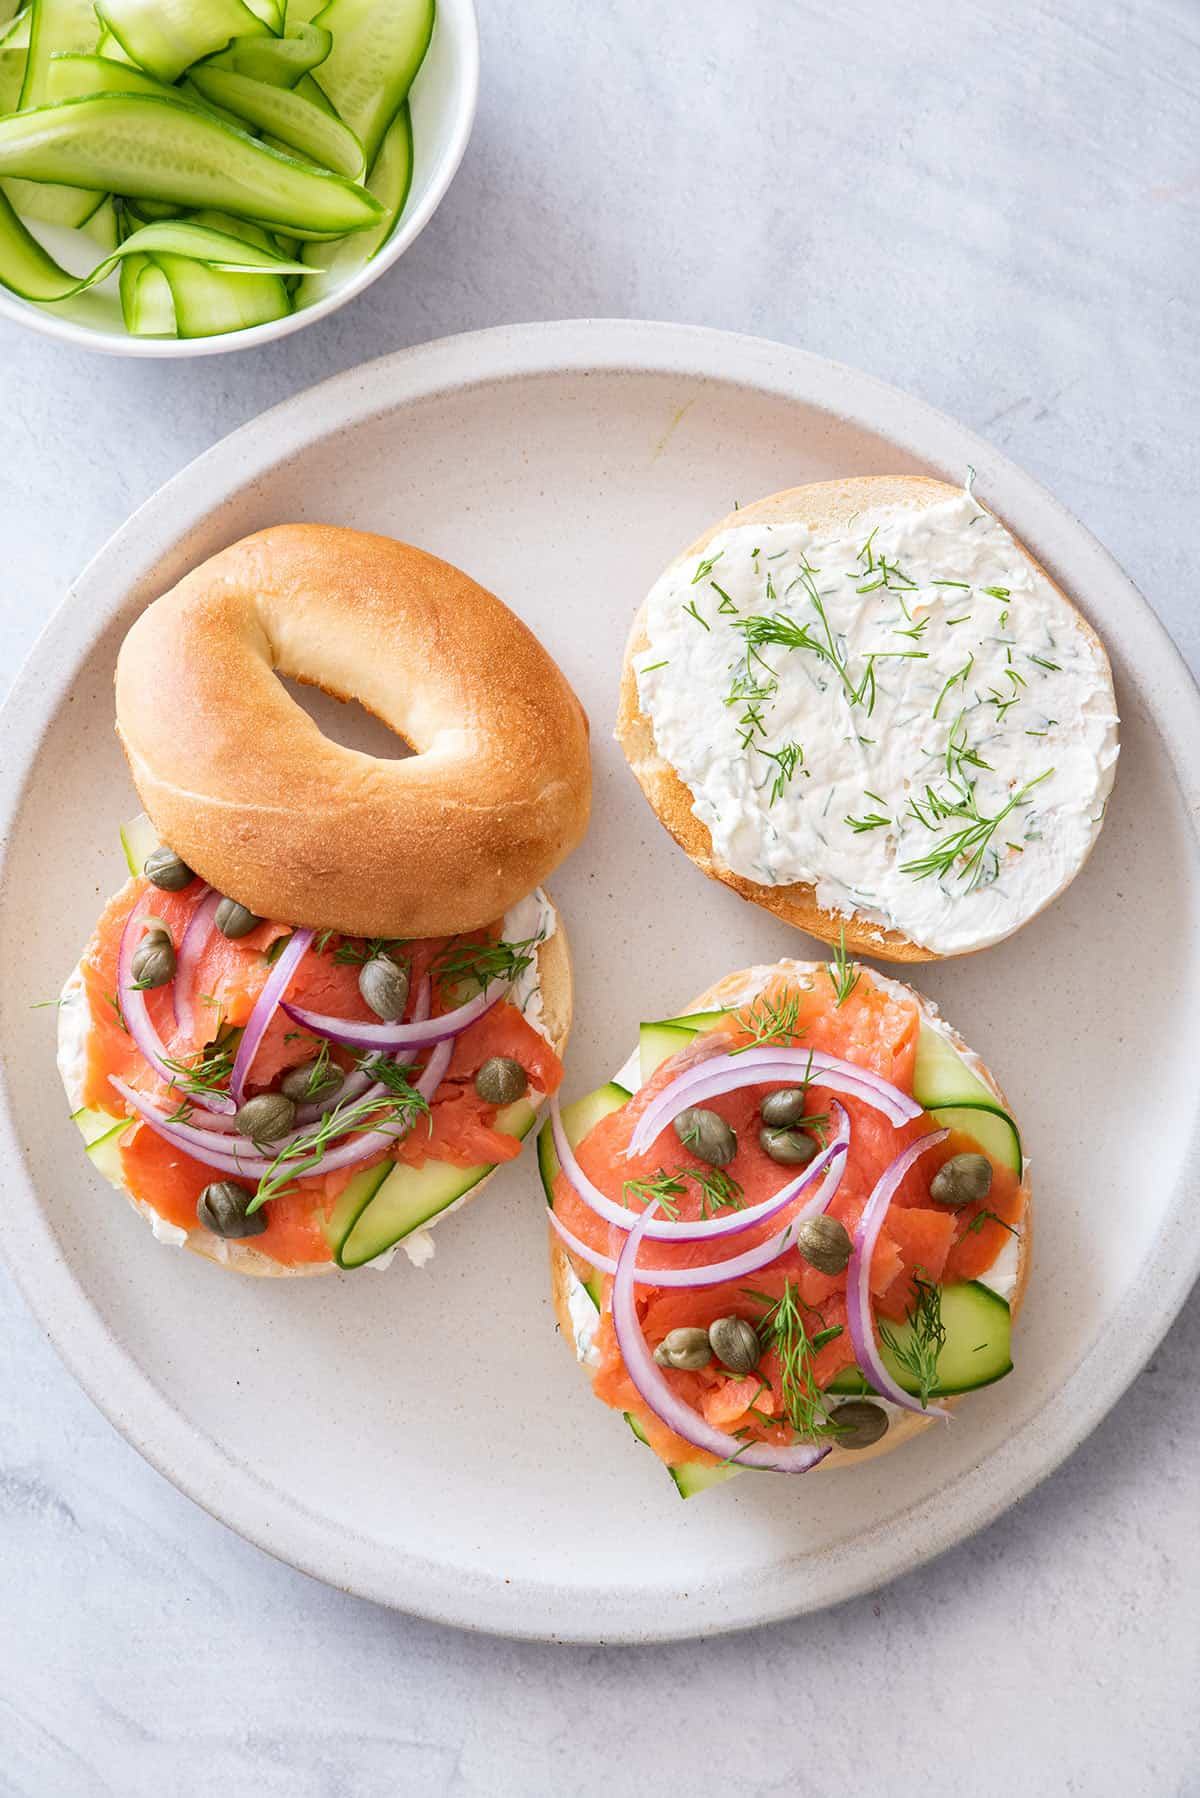 Two smoked salmon bagel sandwiches with a side of extra cucumbers